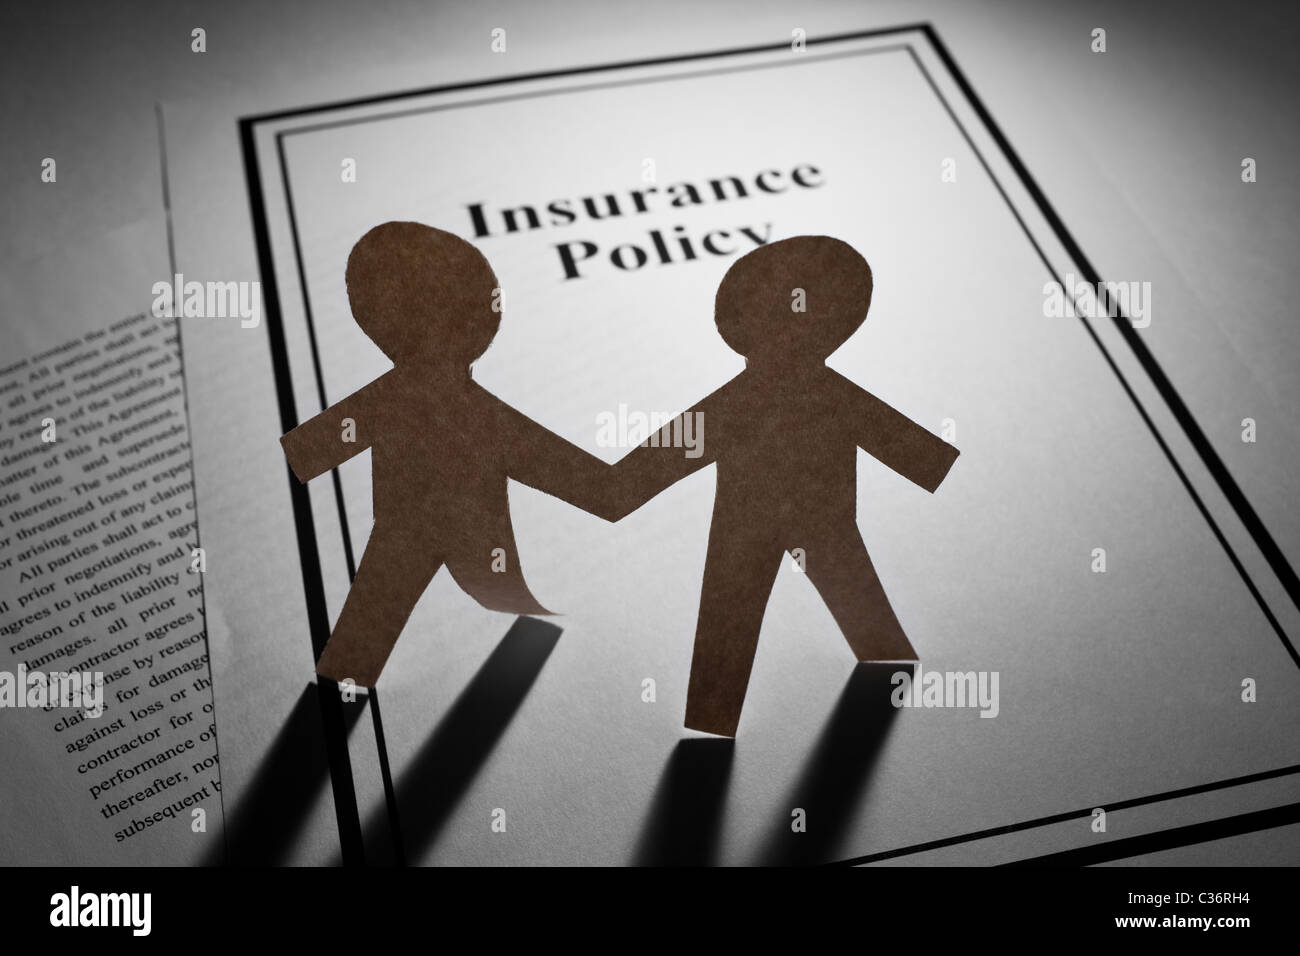 Insurance Policy and Paper Chain Men close up - Stock Image